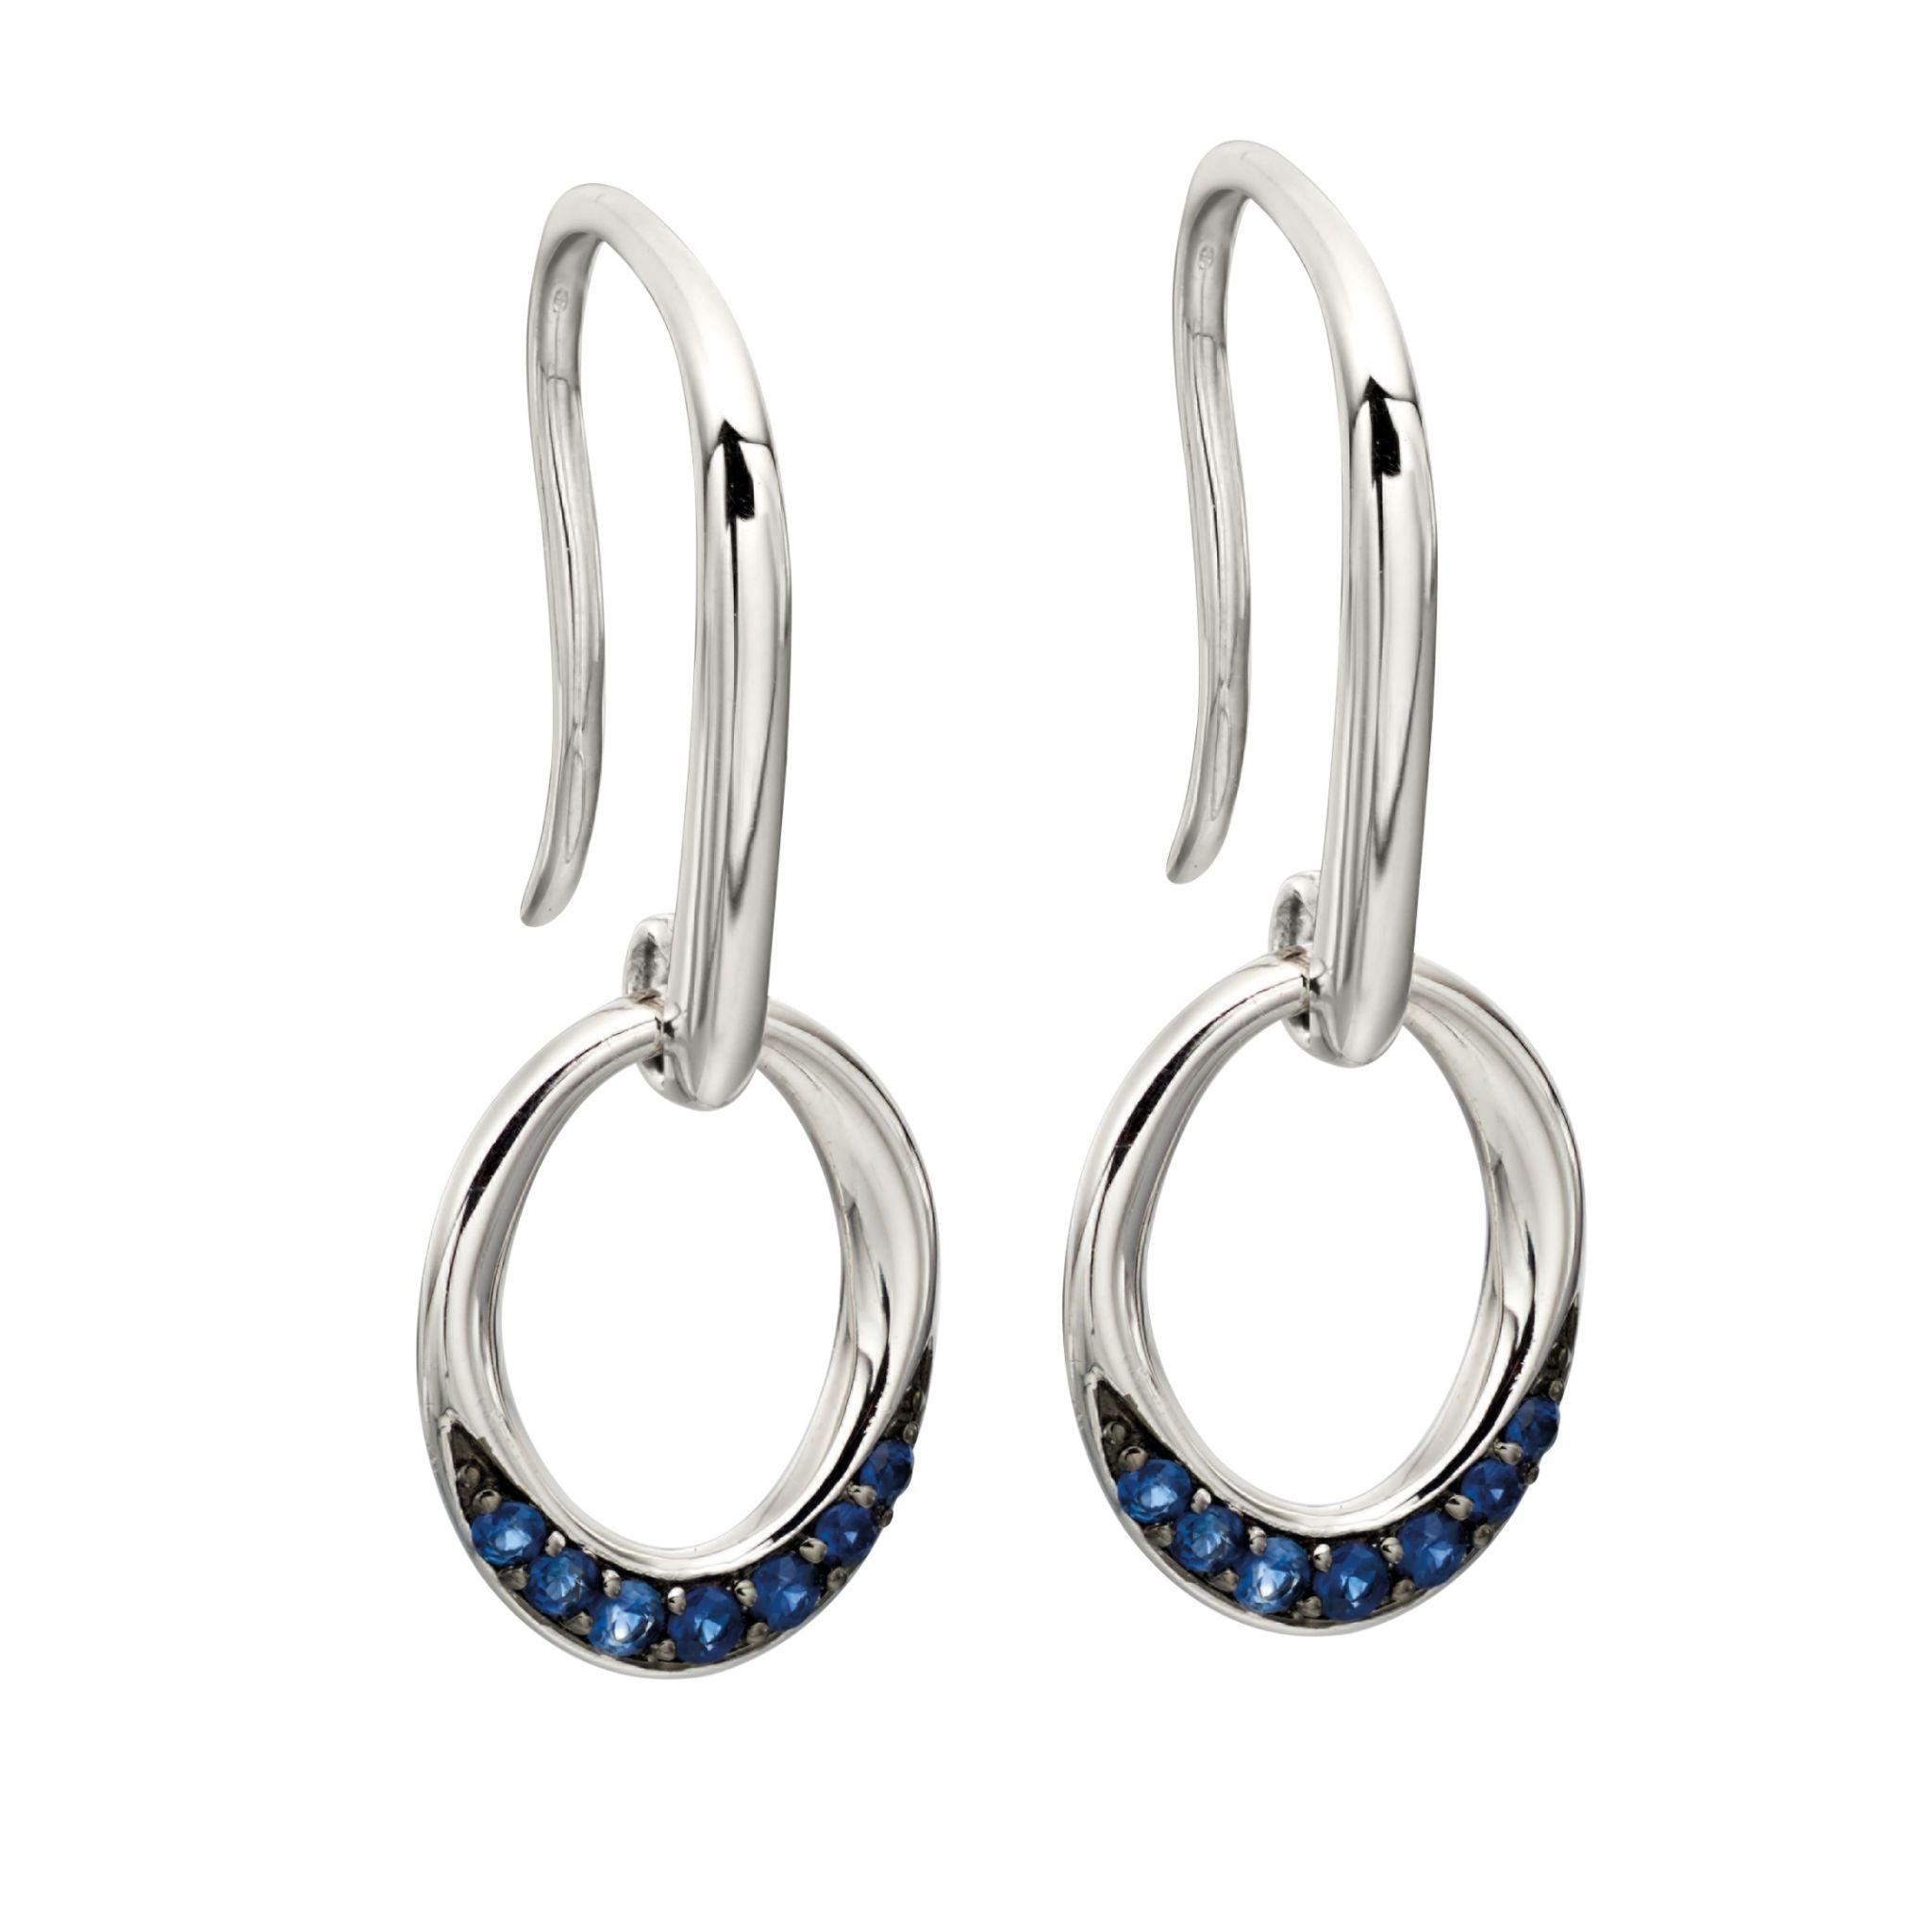 9ct White Gold & Sapphire Drop Earrings